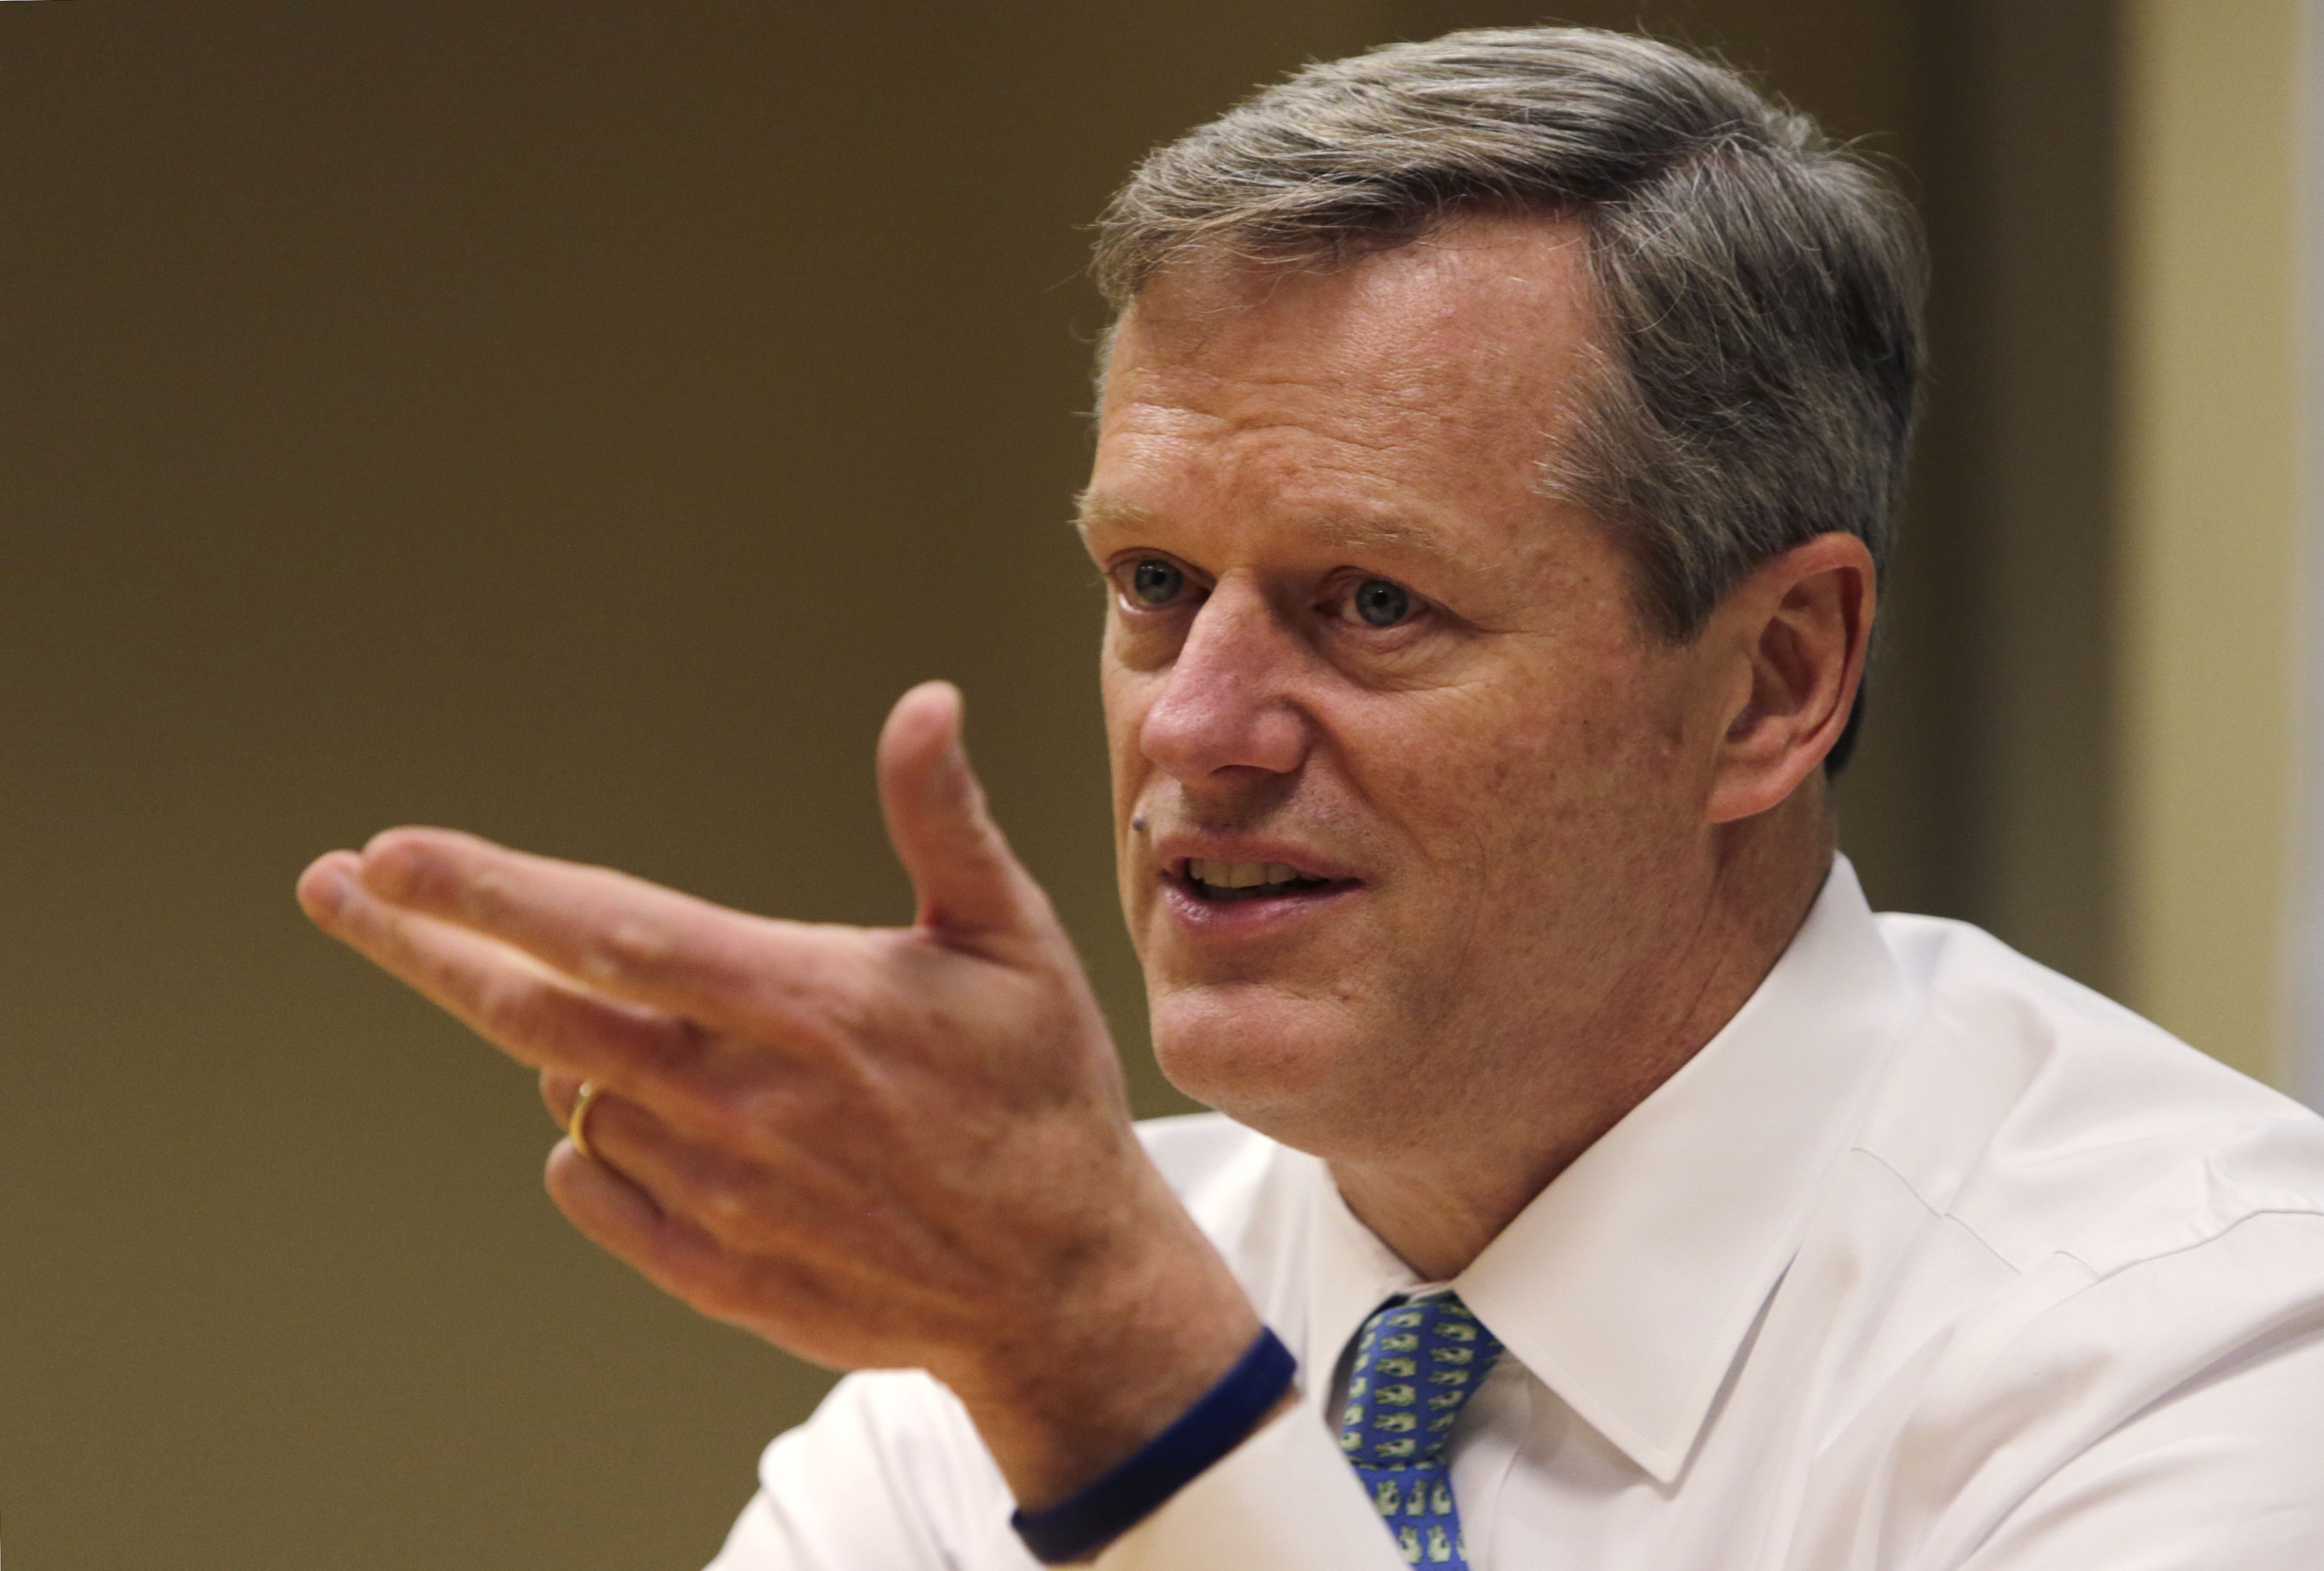 More than 170 named to Baker transition committees - The